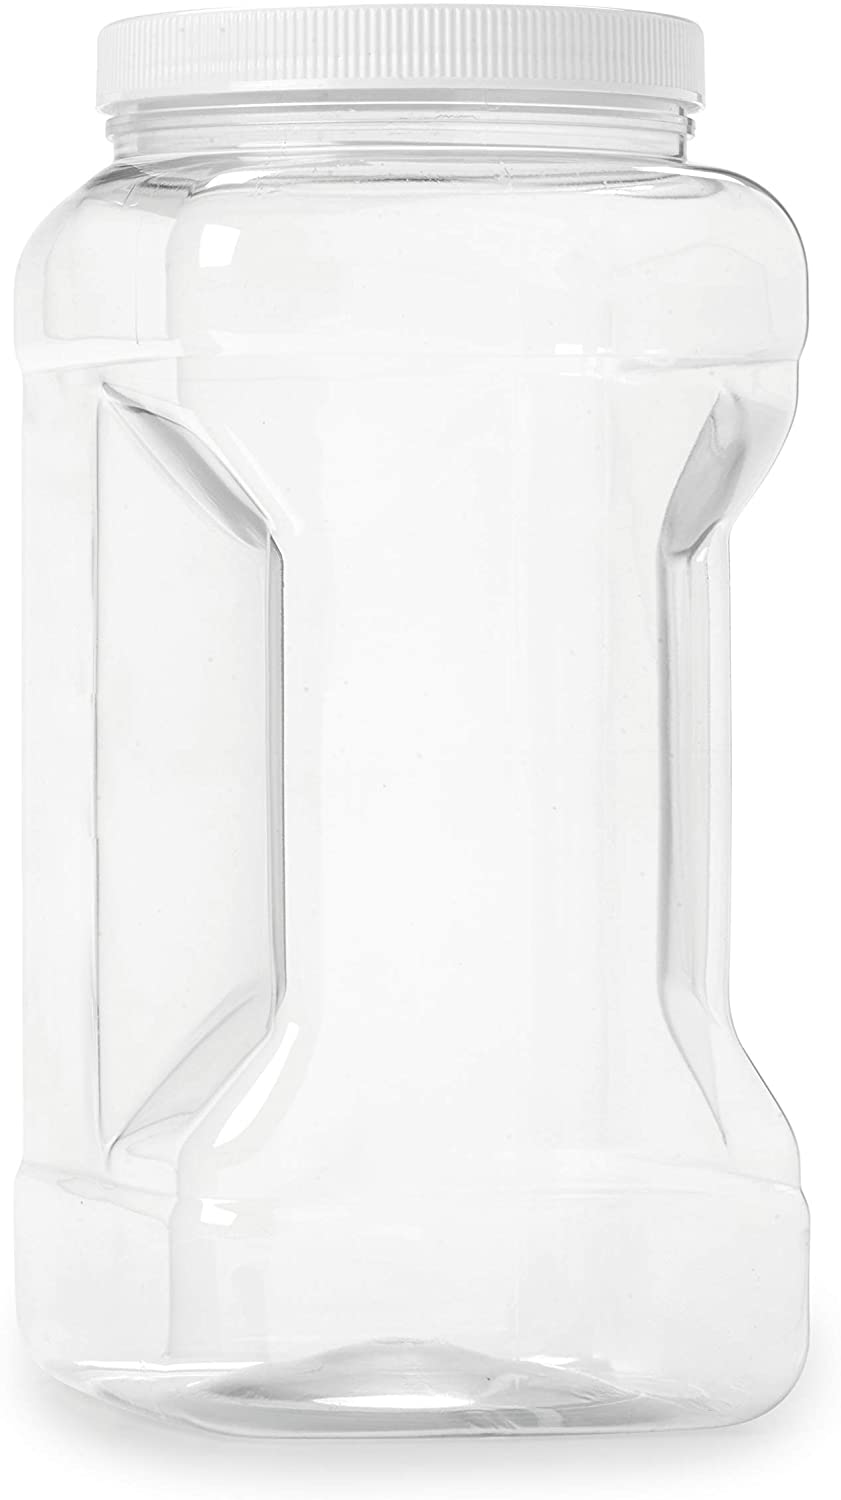 Empty 1 Gallon Jar w/Airtight Leakproof Plastic Lid - Wide Mouth Easy to Clean - BPA Free & Dishwasher Safe - USDA Certified - Sun Tea, Fermentation, Food Storage, 1790, 1PK